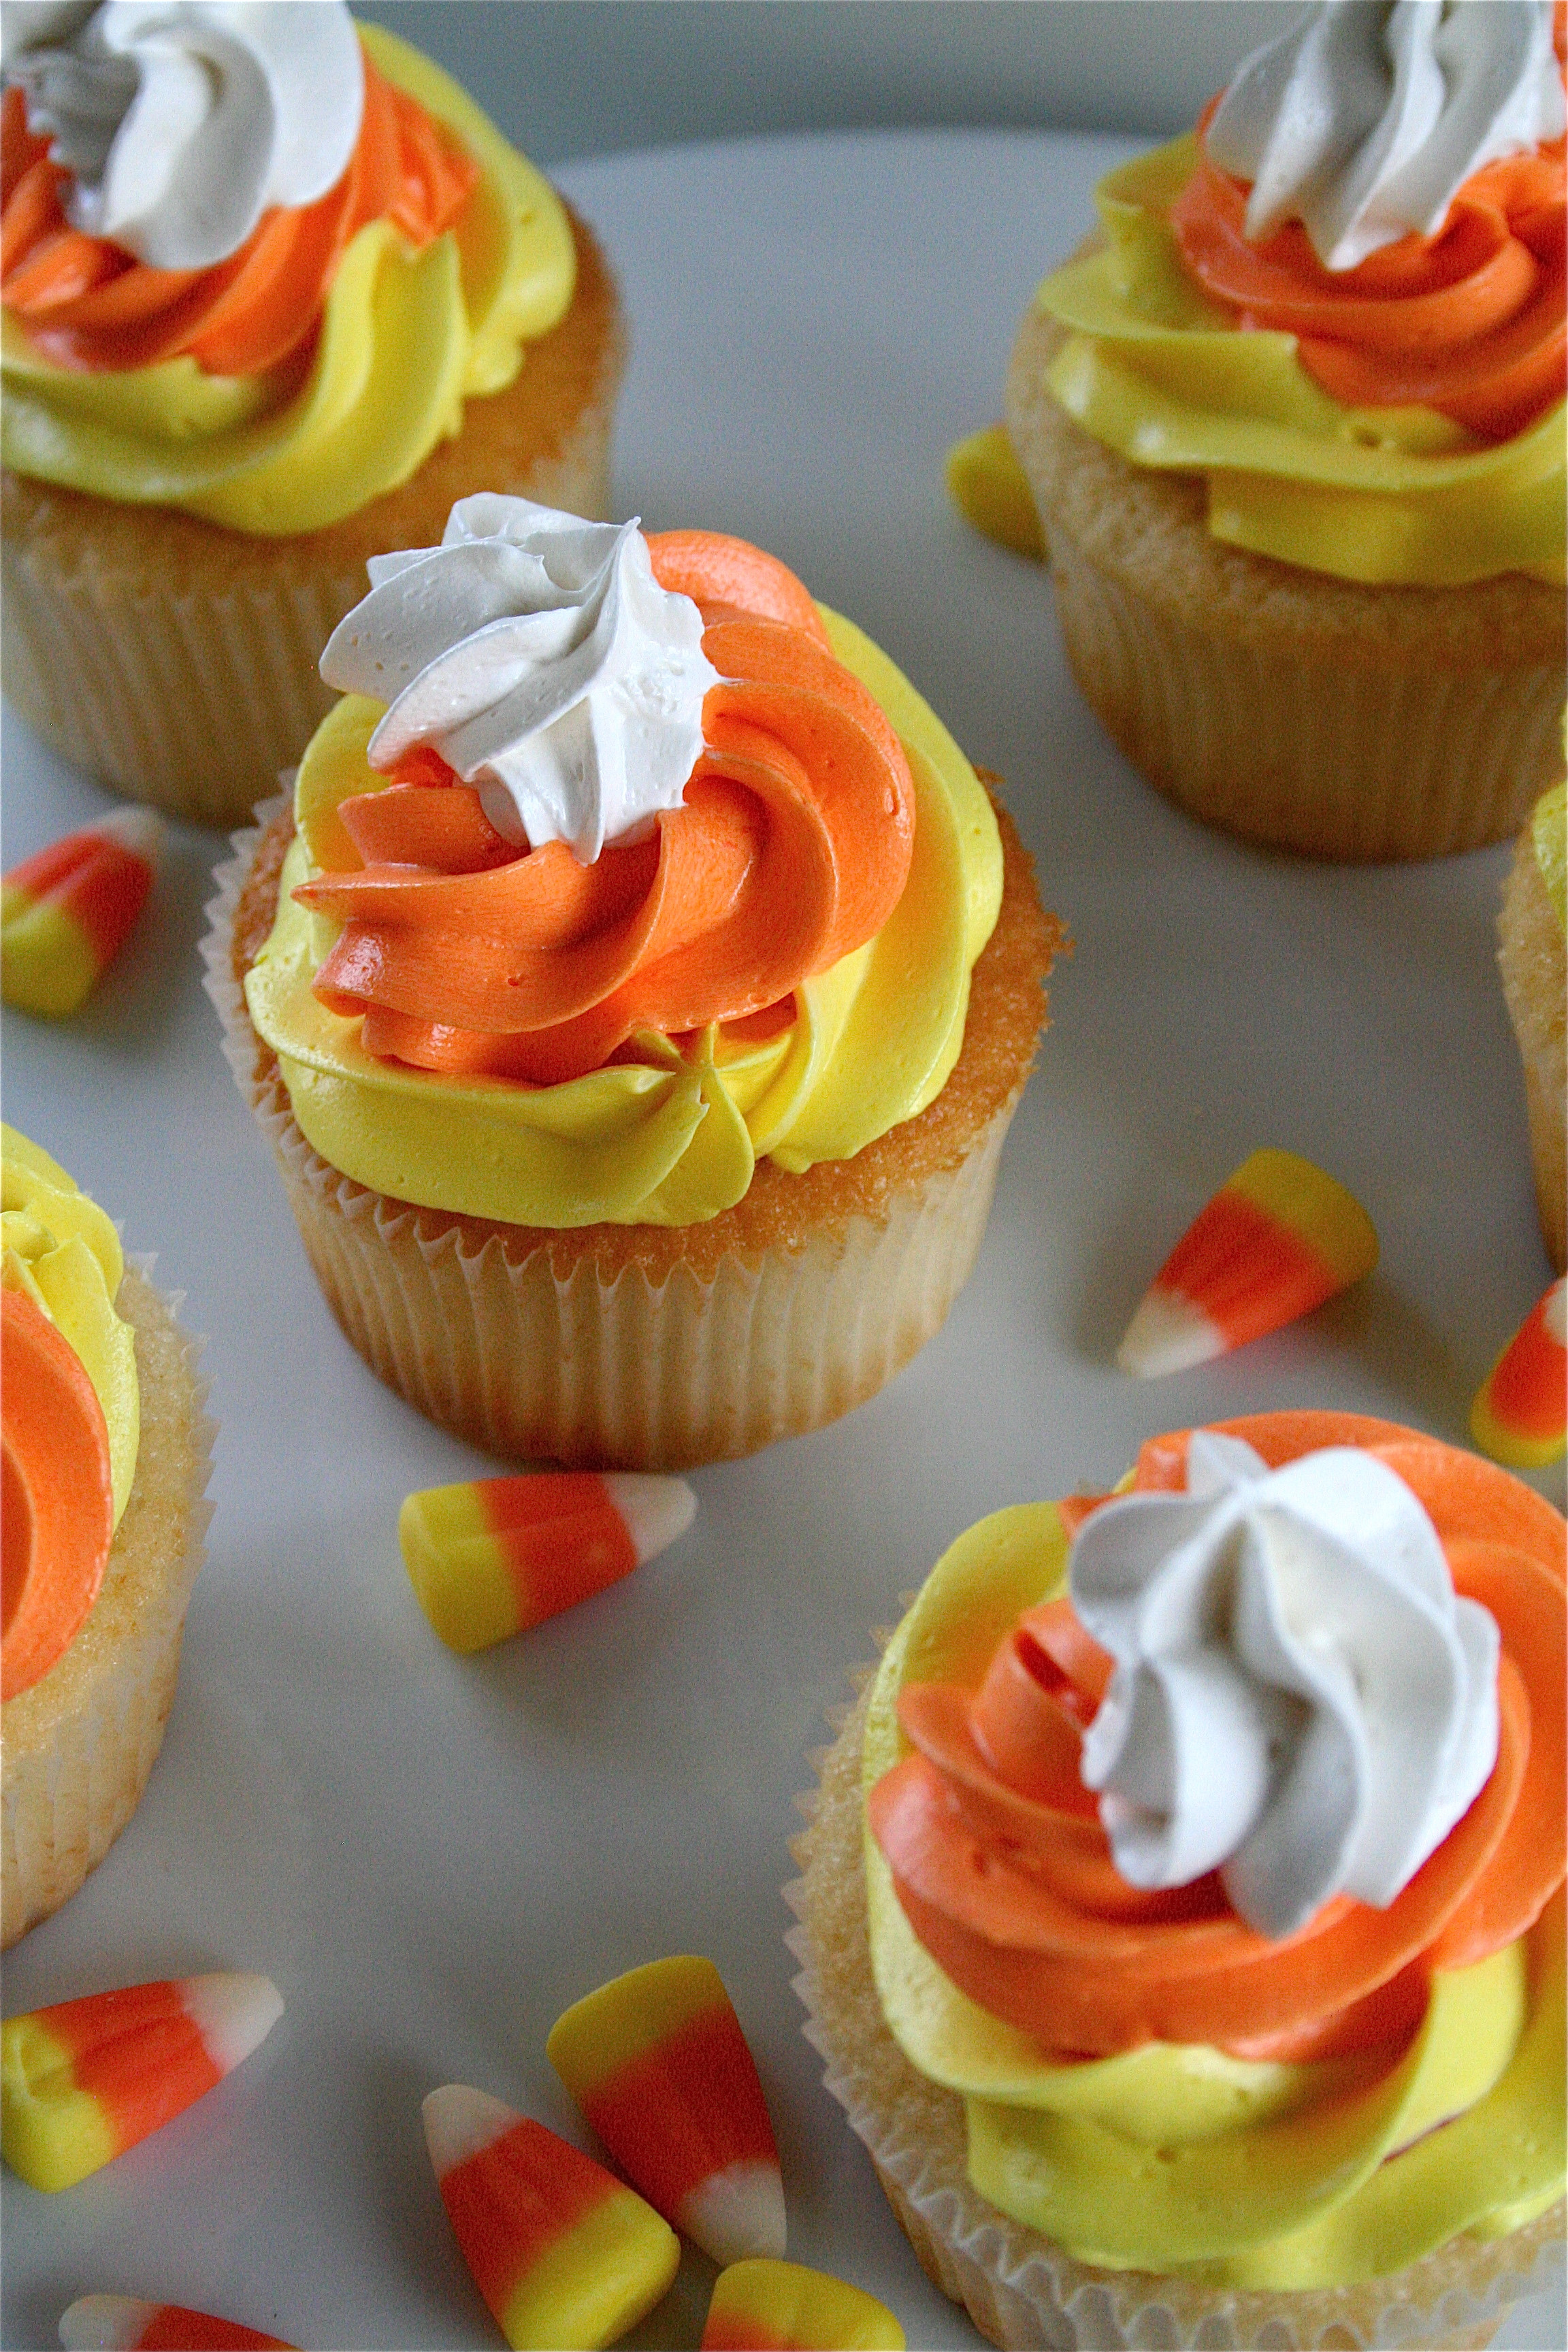 Halloween Cup Cakes  28 Cute Halloween Cupcakes Easy Recipes for Halloween